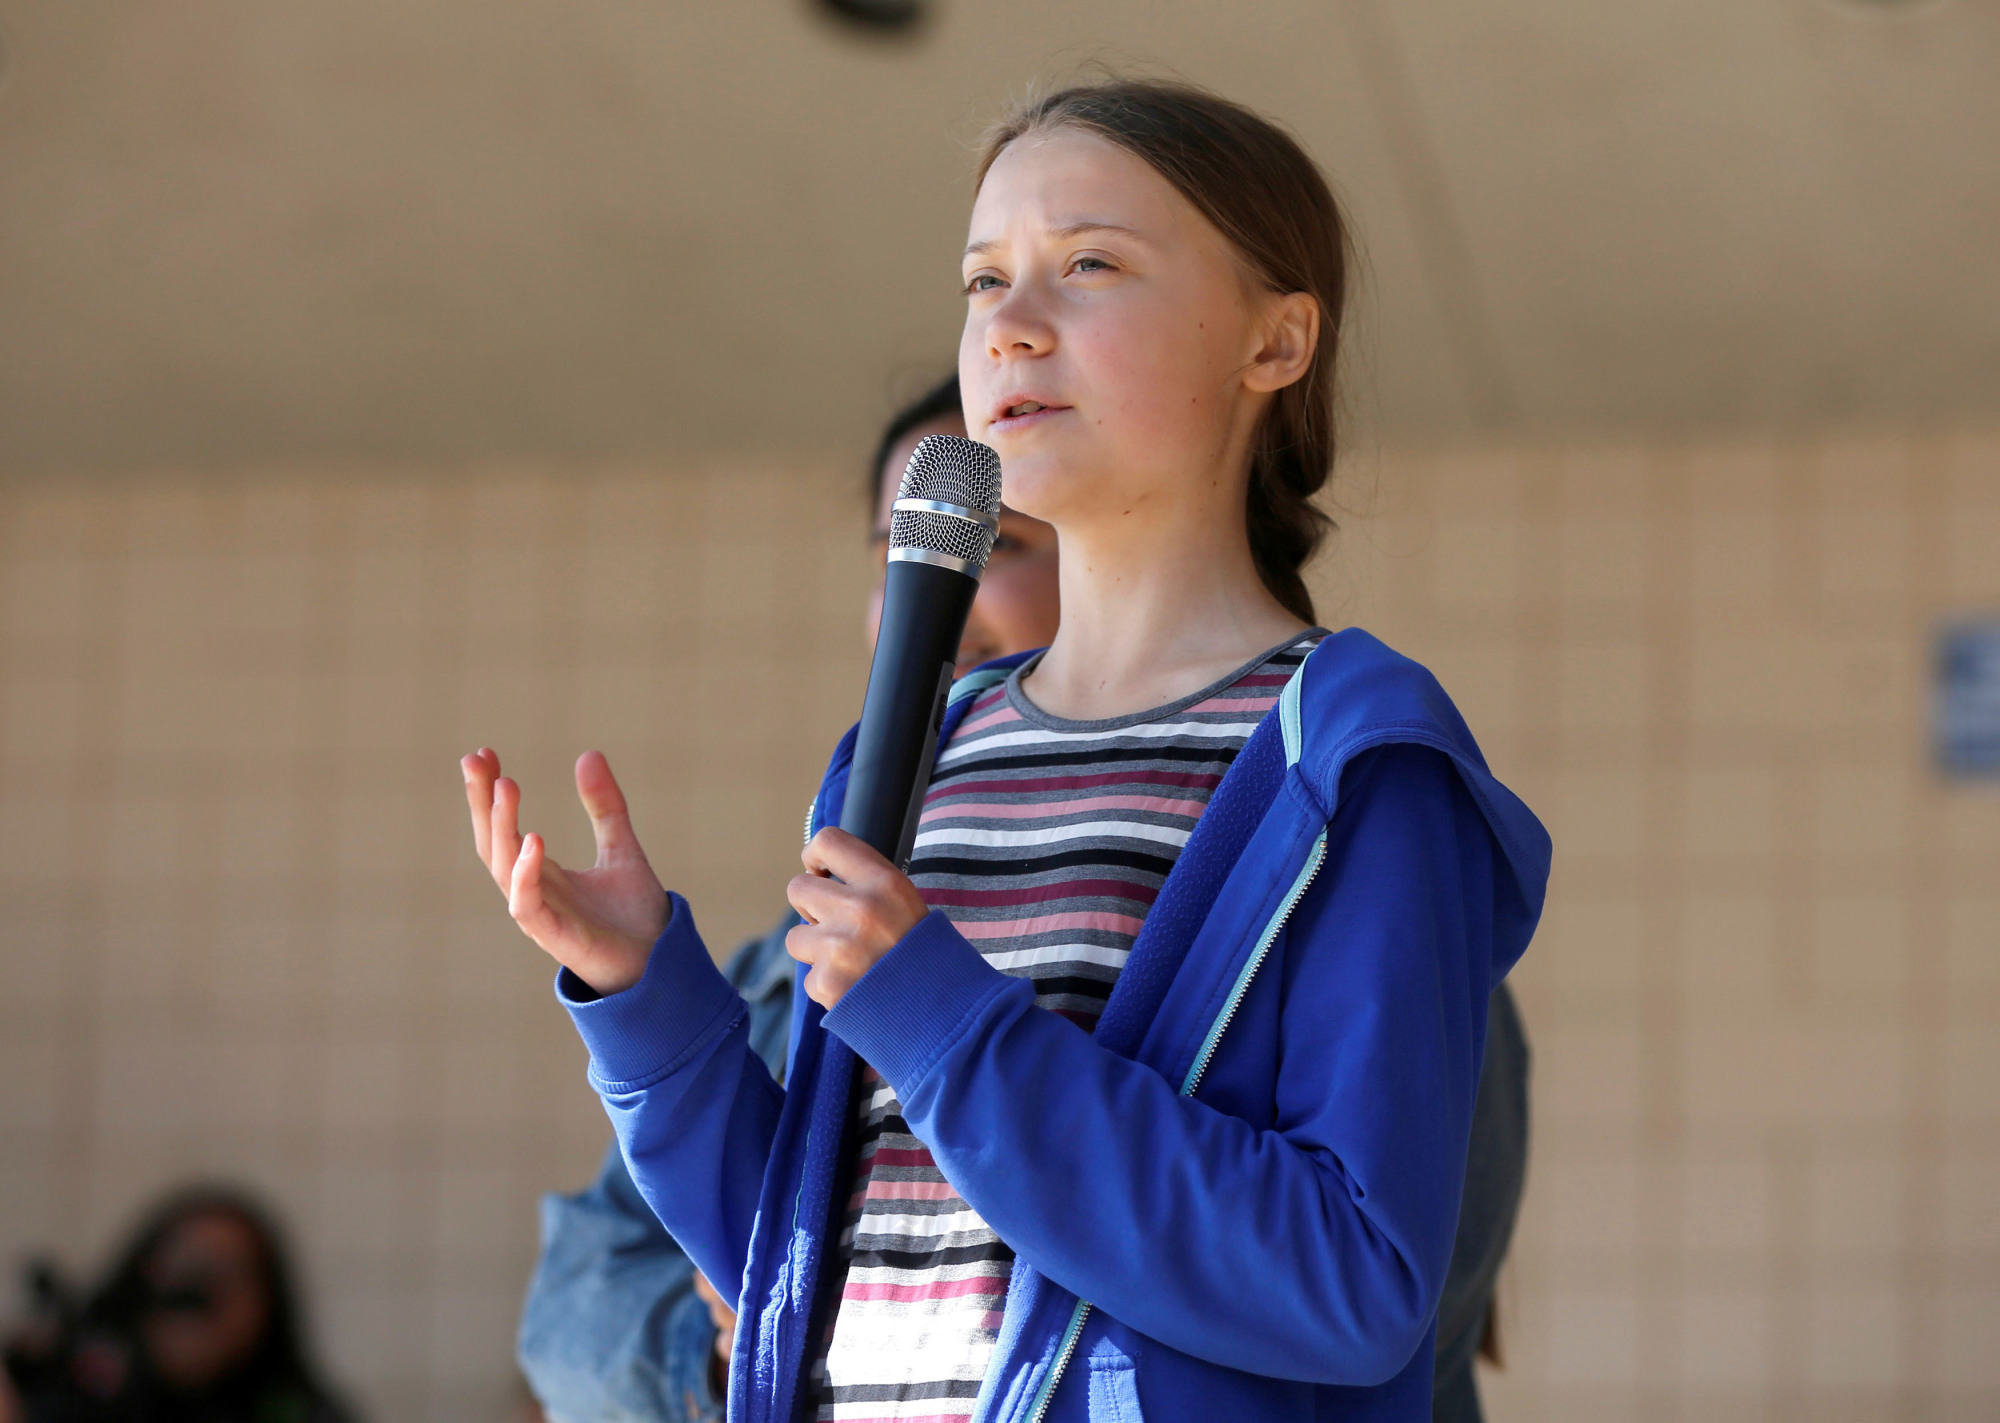 Center stage: Youth activist Greta Thunberg speaks at a climate change rally in Rapid City, South Dakota, in October. | REUTERS